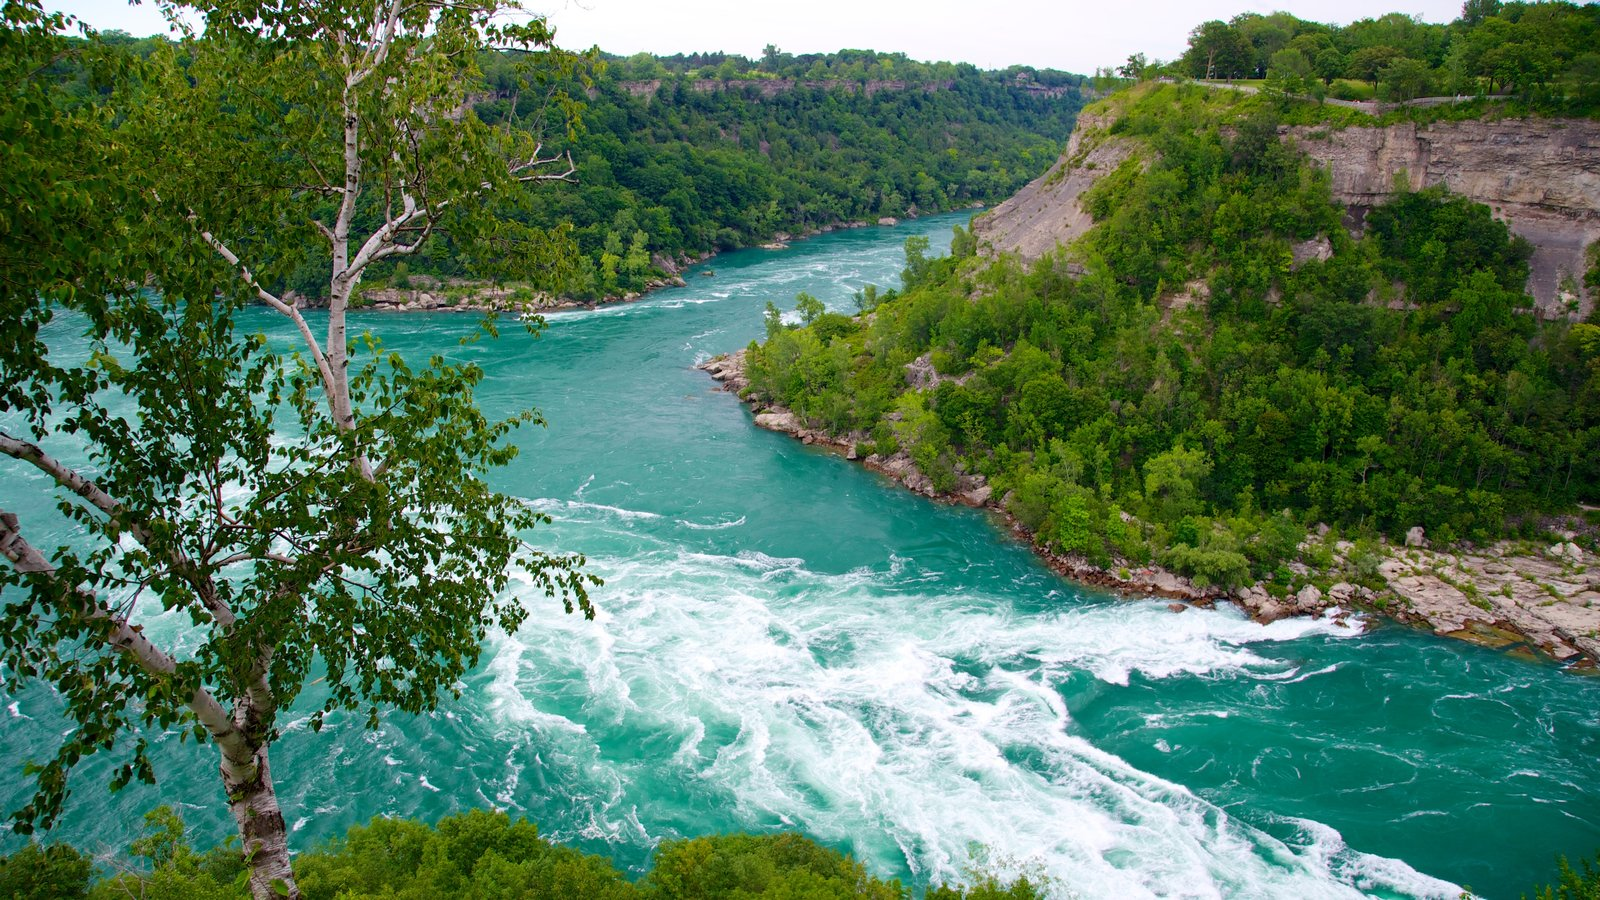 Whirlpool State Park Pictures: View Photos & Images of Whirlpool ...